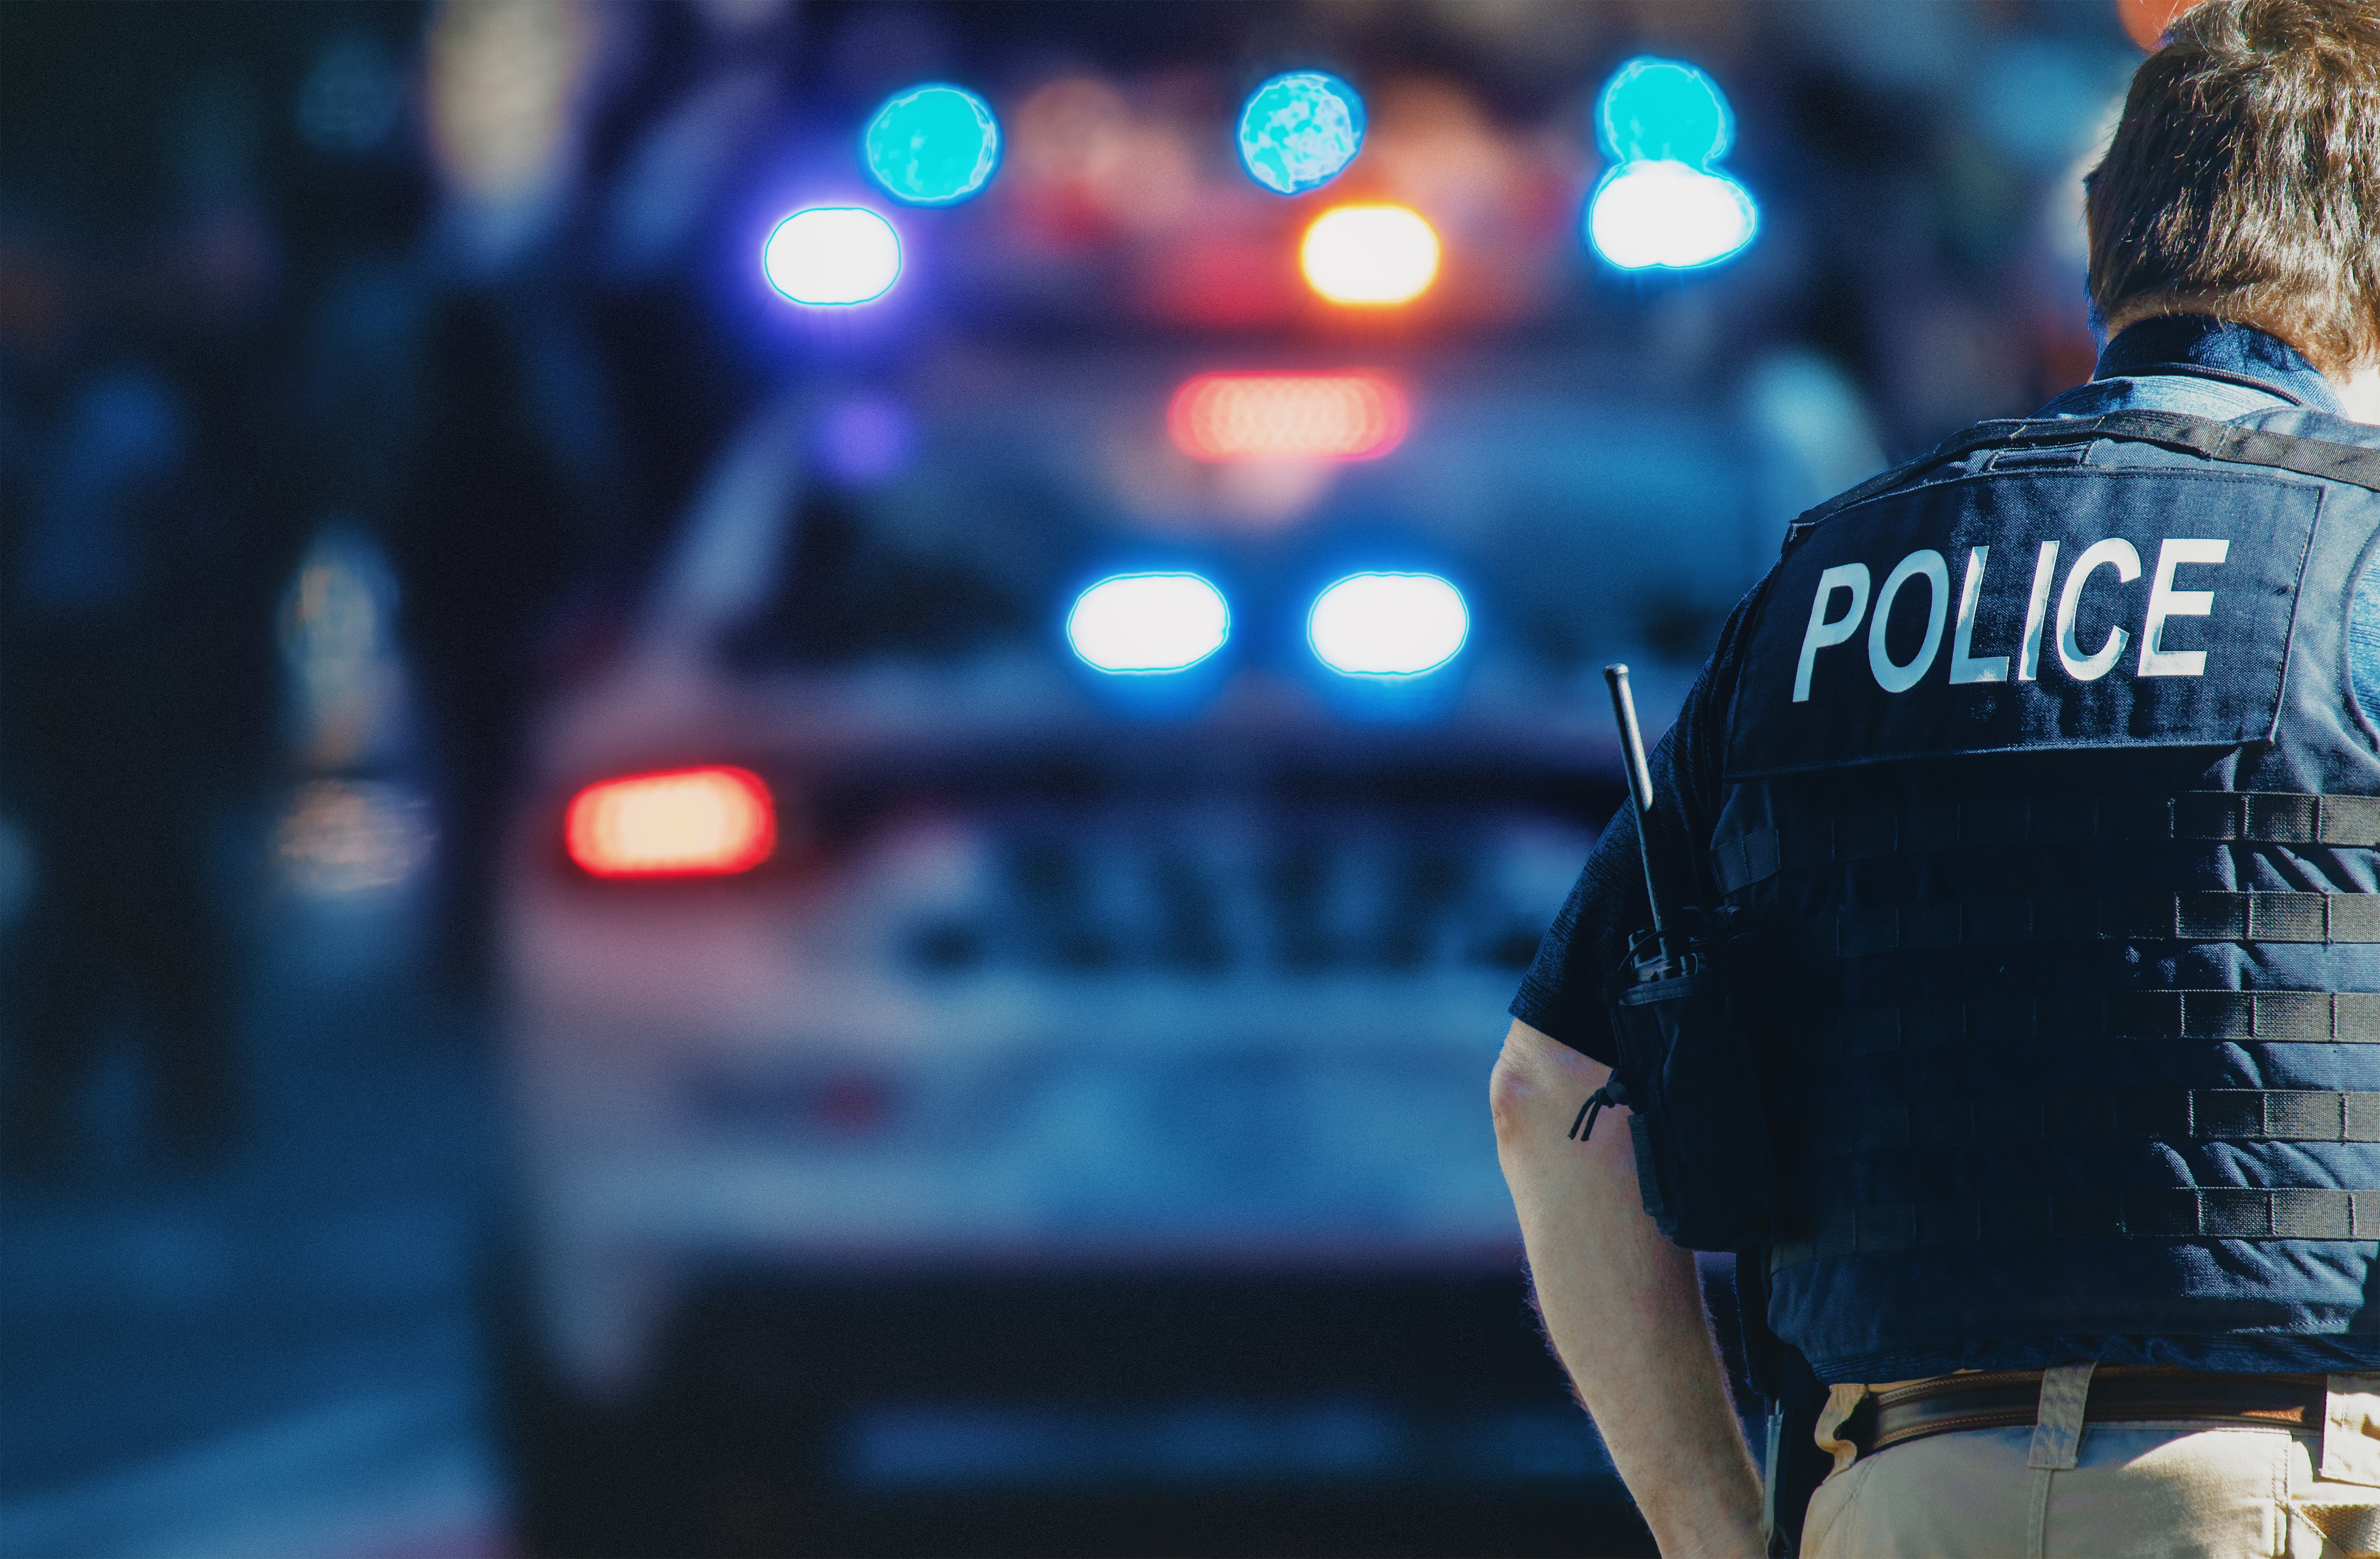 American policeman and police car in the background   Photo: Shutterstock